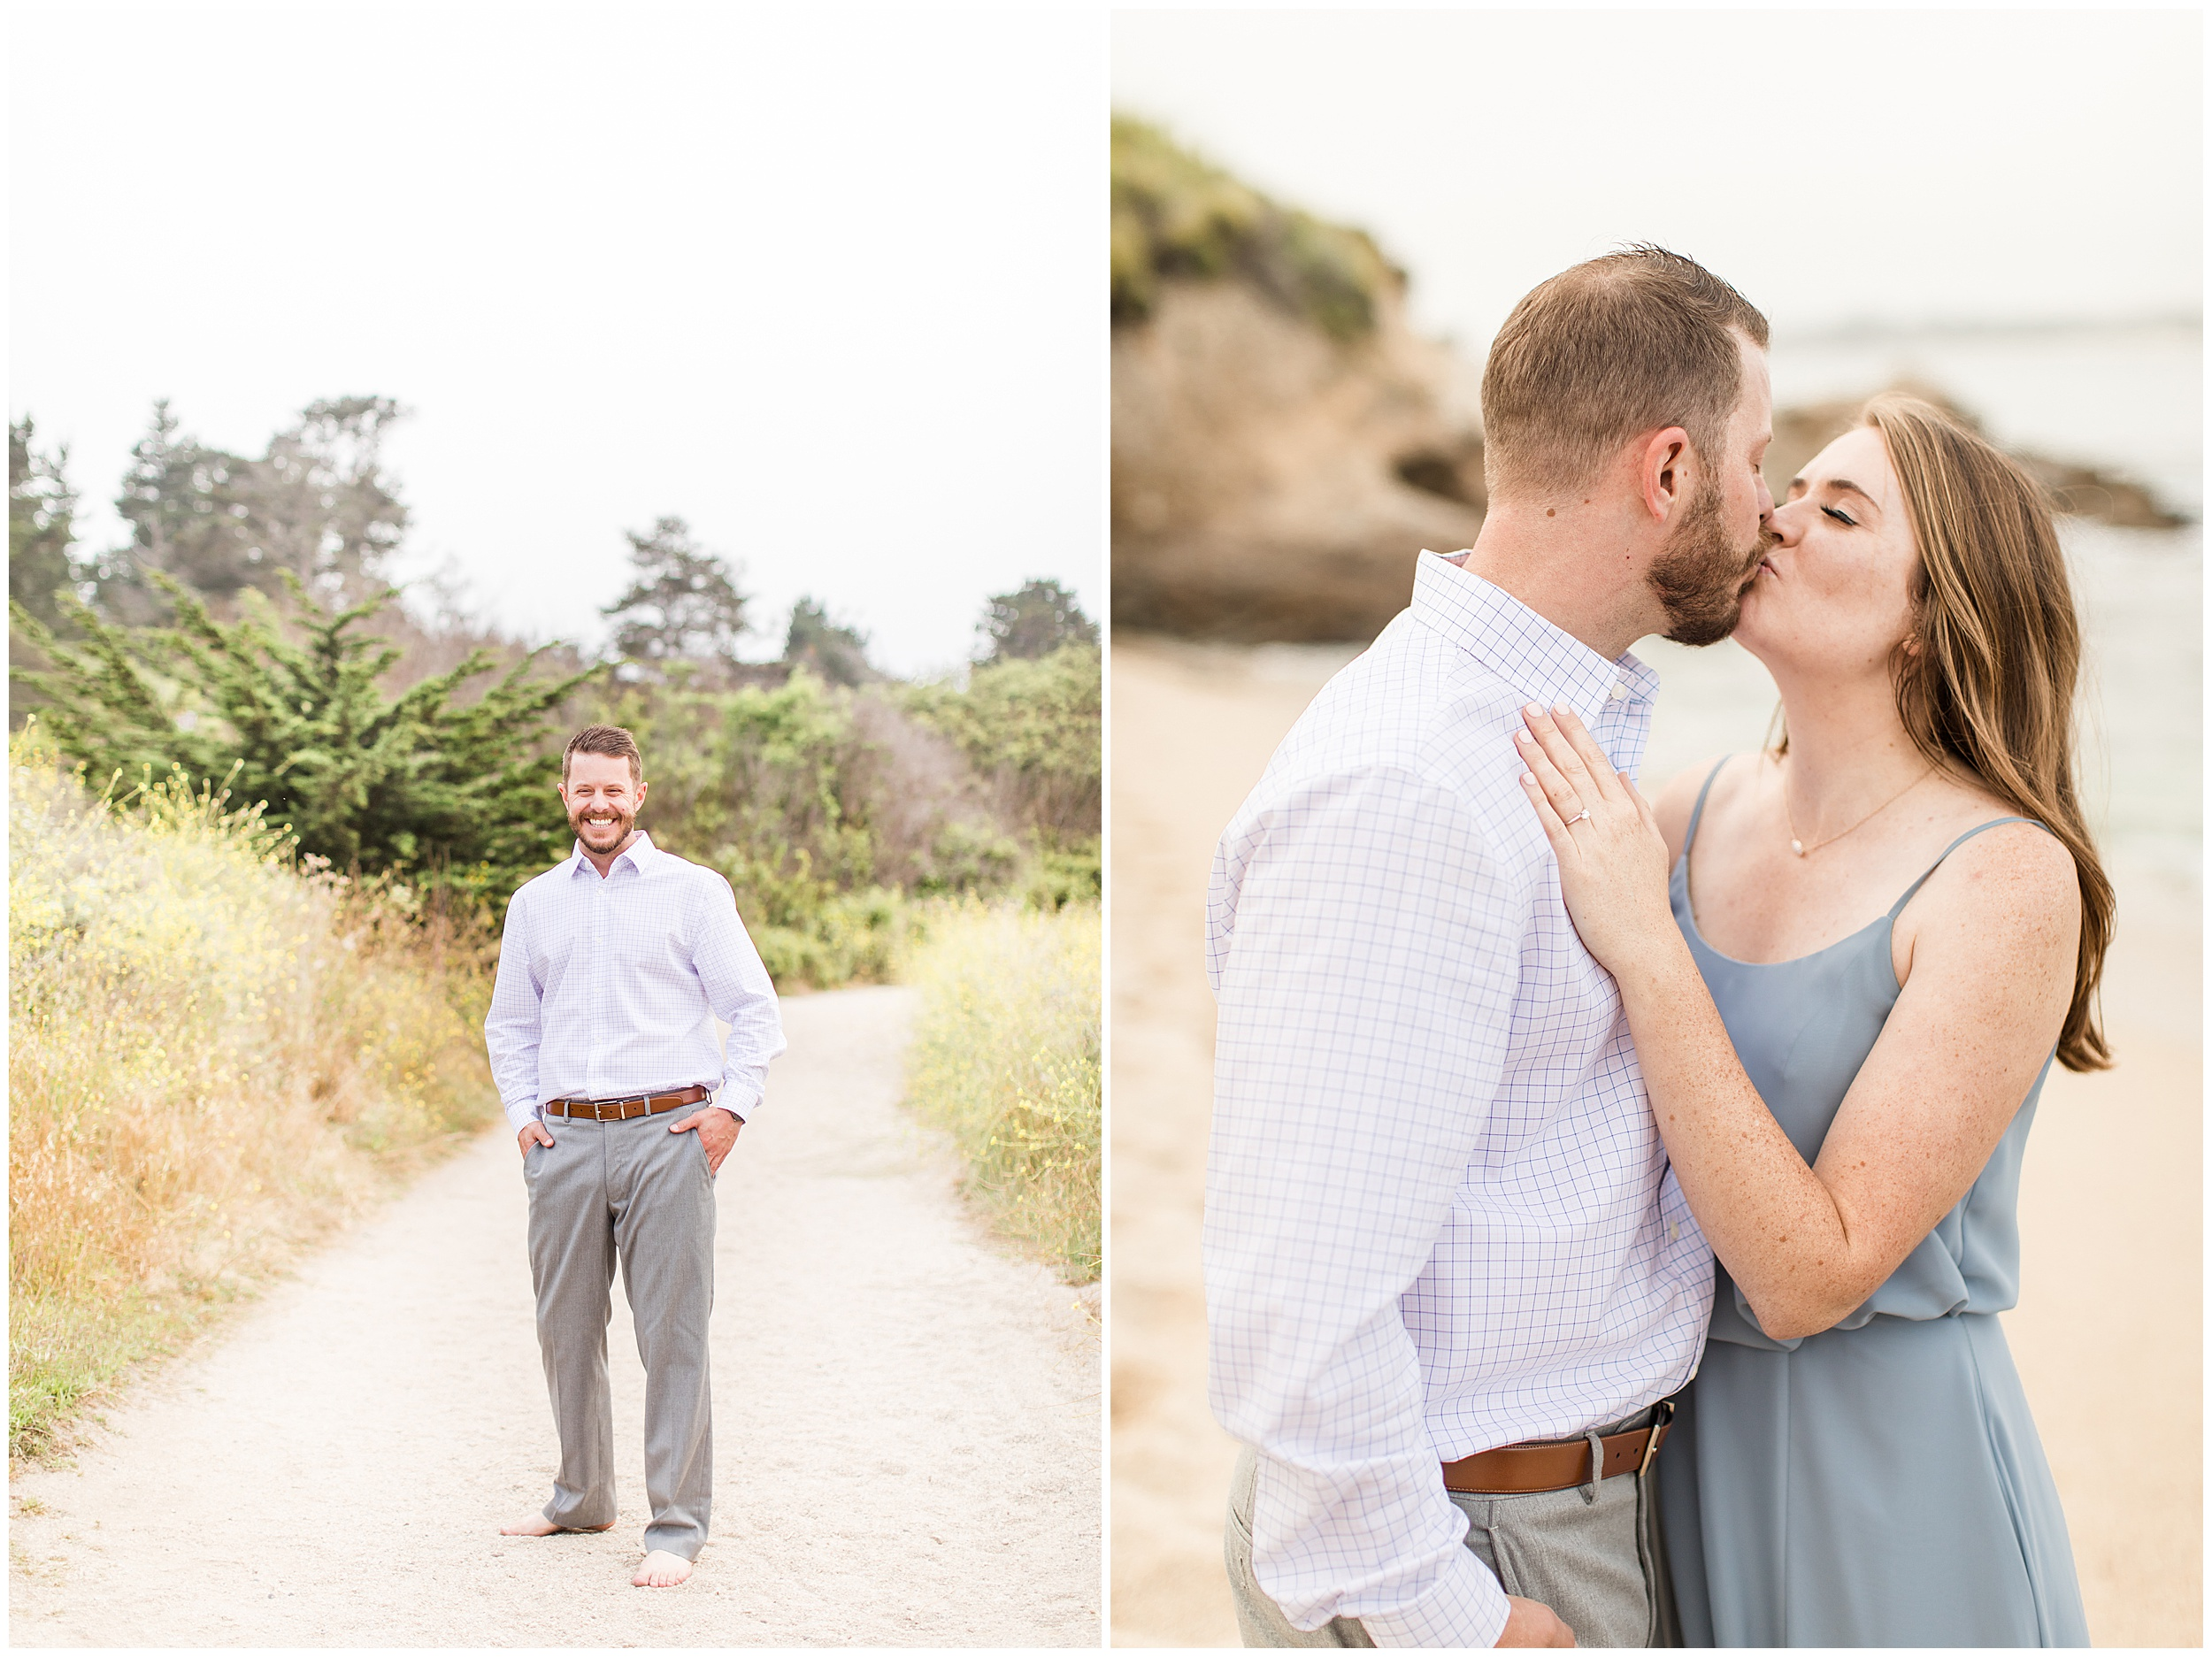 2019 carmel by the sea surprise proposal engagement session wedding photographer angela sue photography_0029.jpg